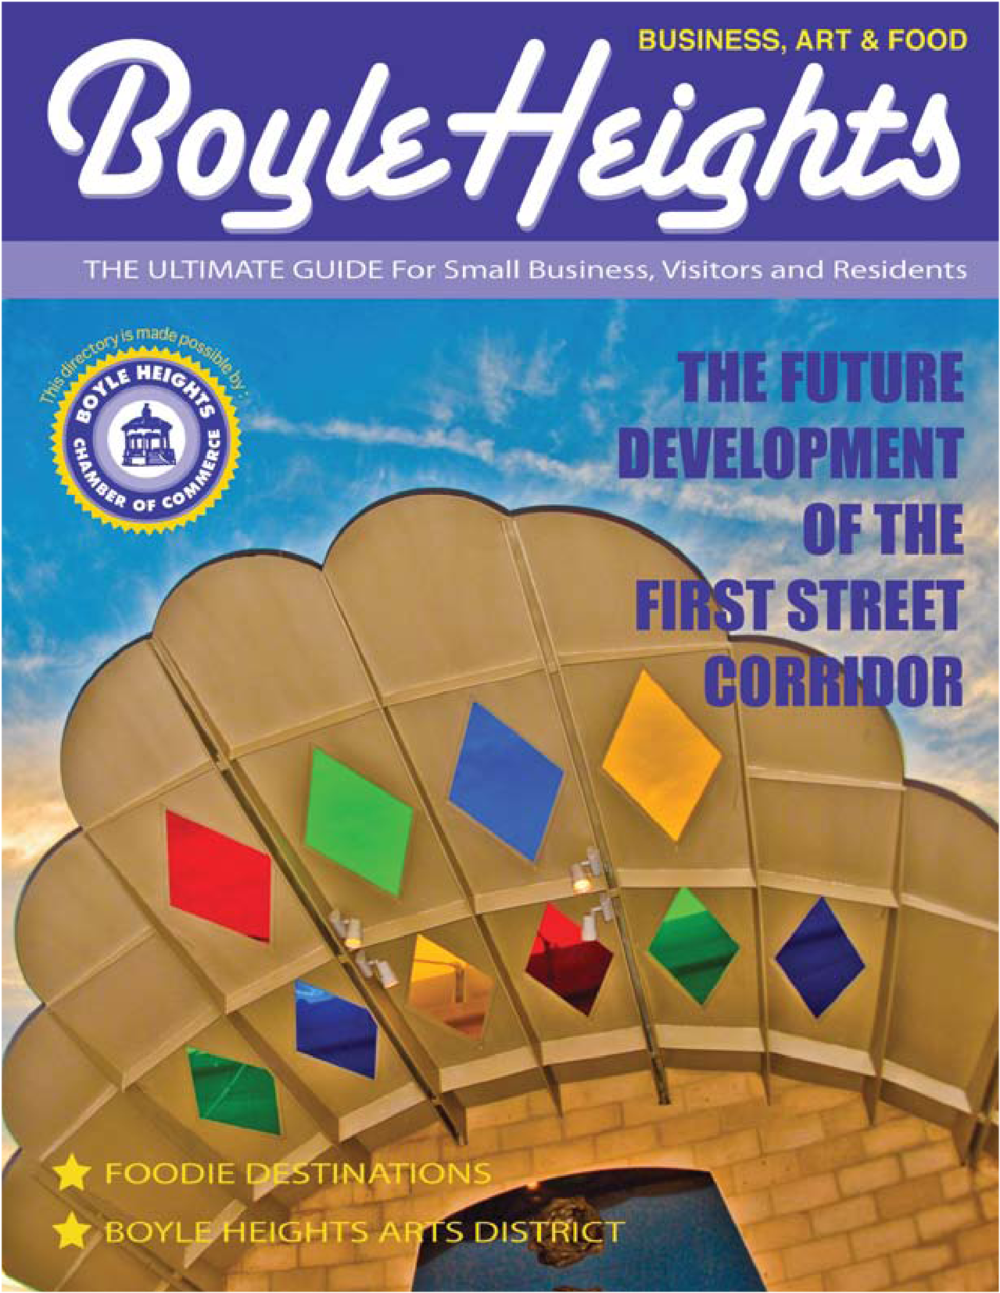 BHCC_BusinessDirectory_Cover.png